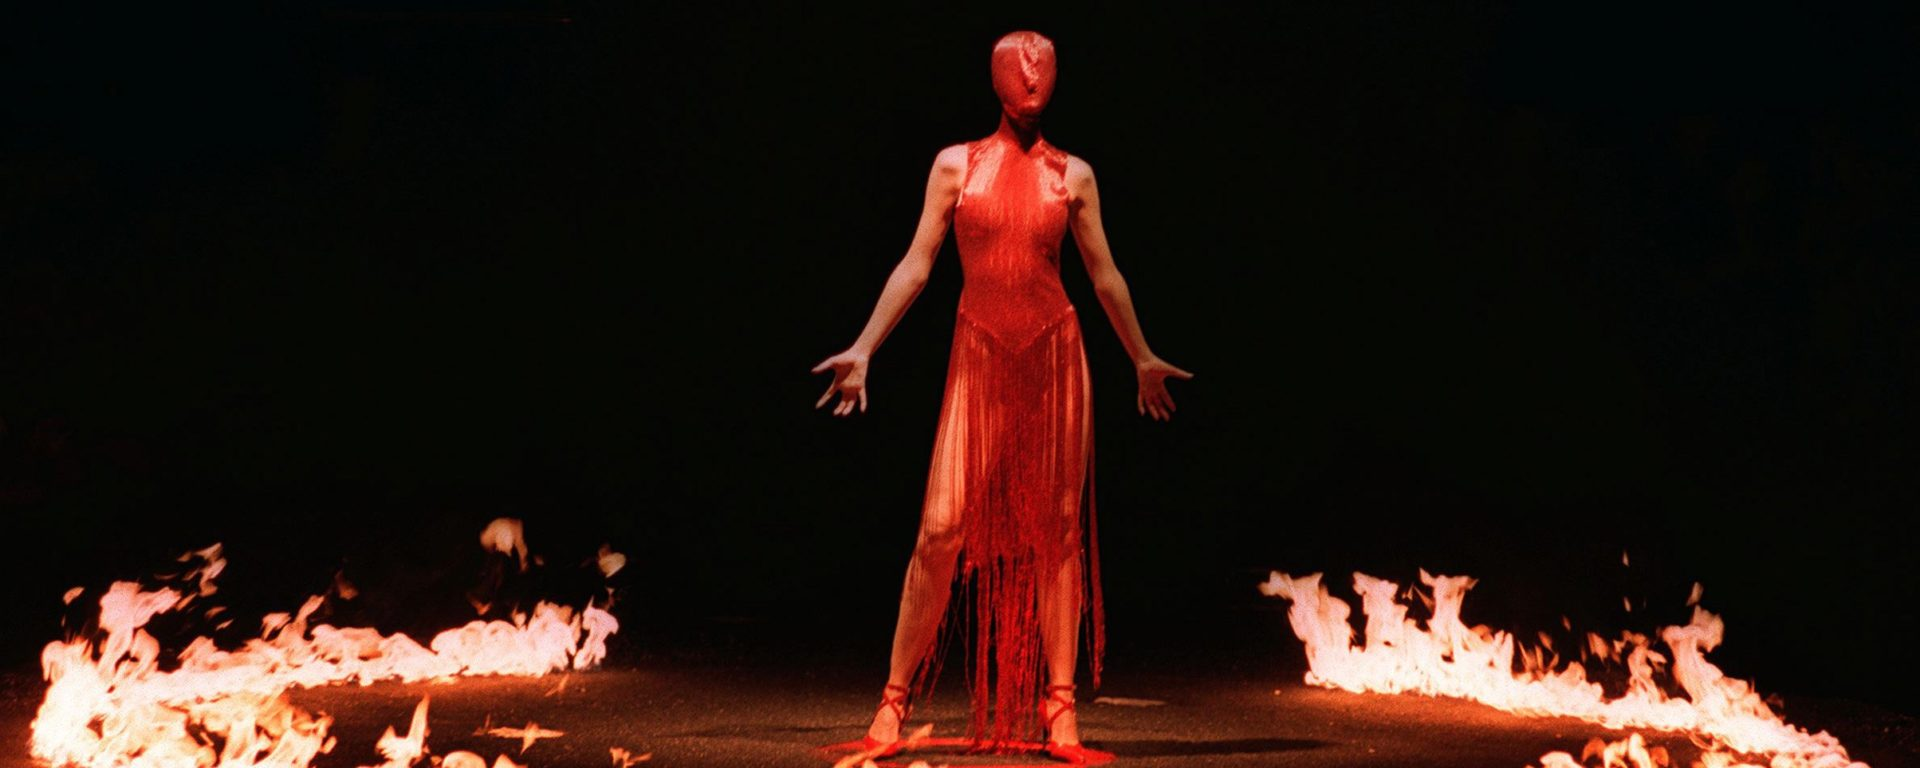 McQueen fashion documentary cultural hater